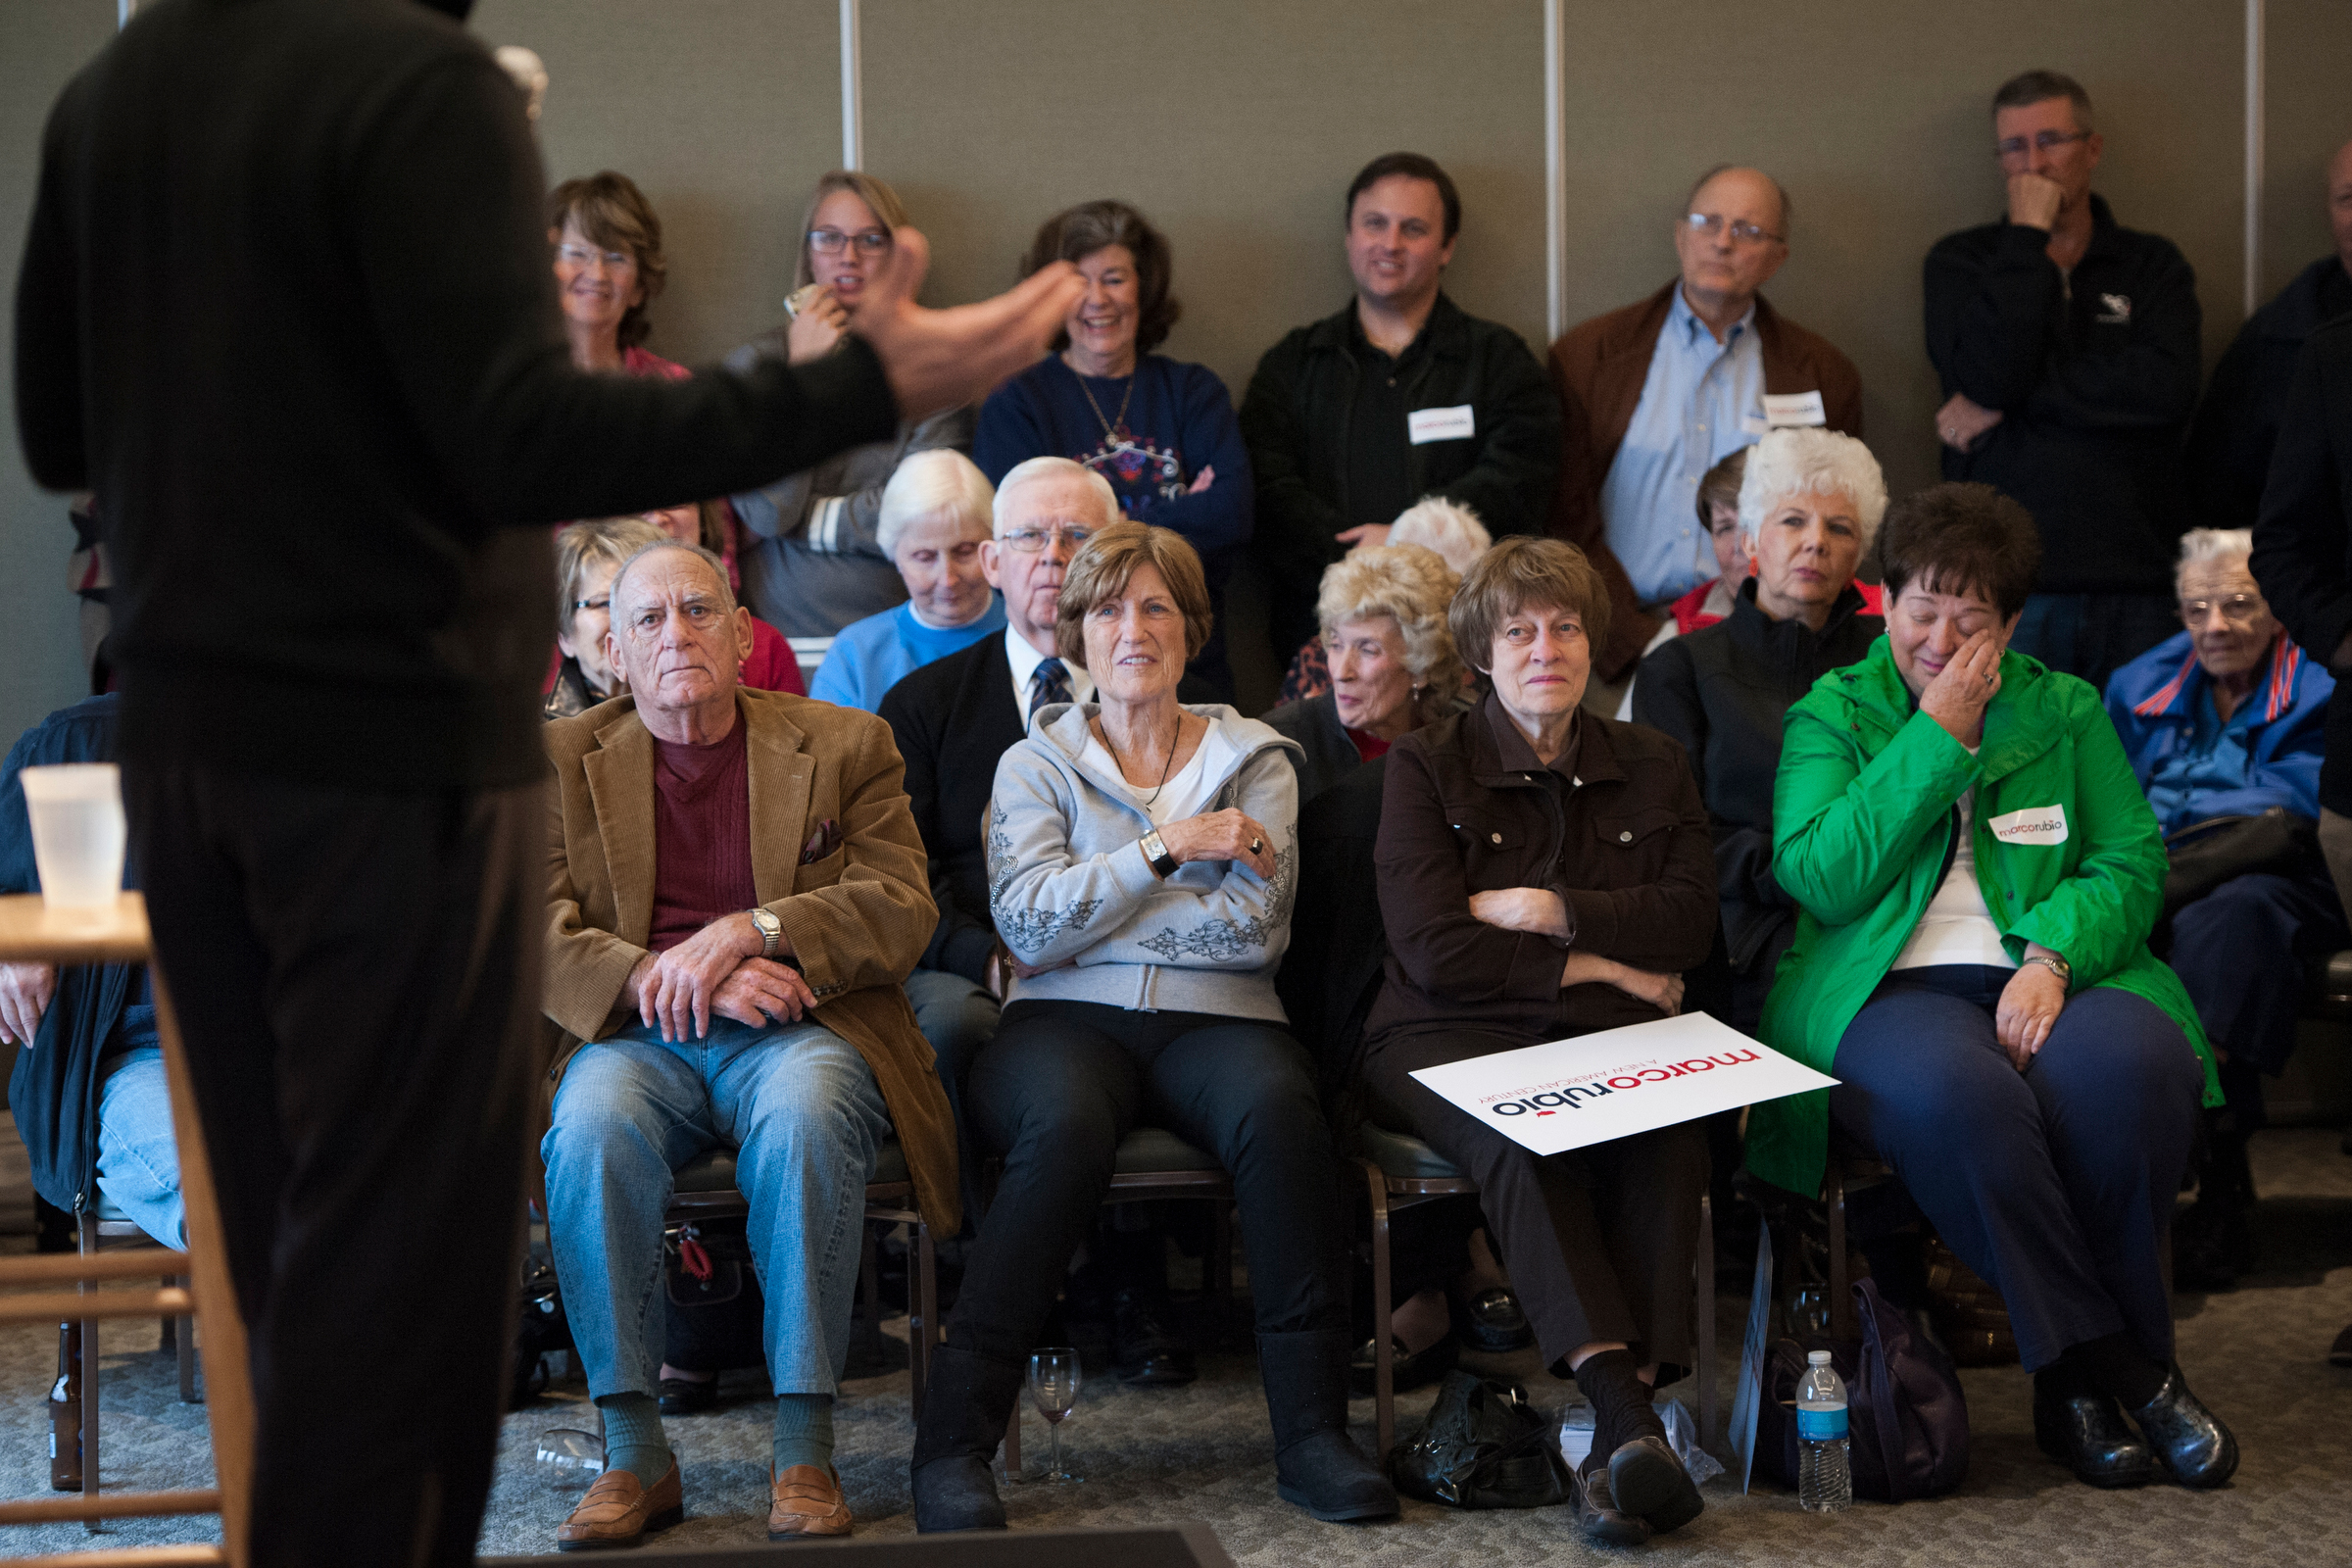 Supporters watch as Republican presidential candidate Sen. Marco Rubio speaks at event in Sioux City, Iowa.